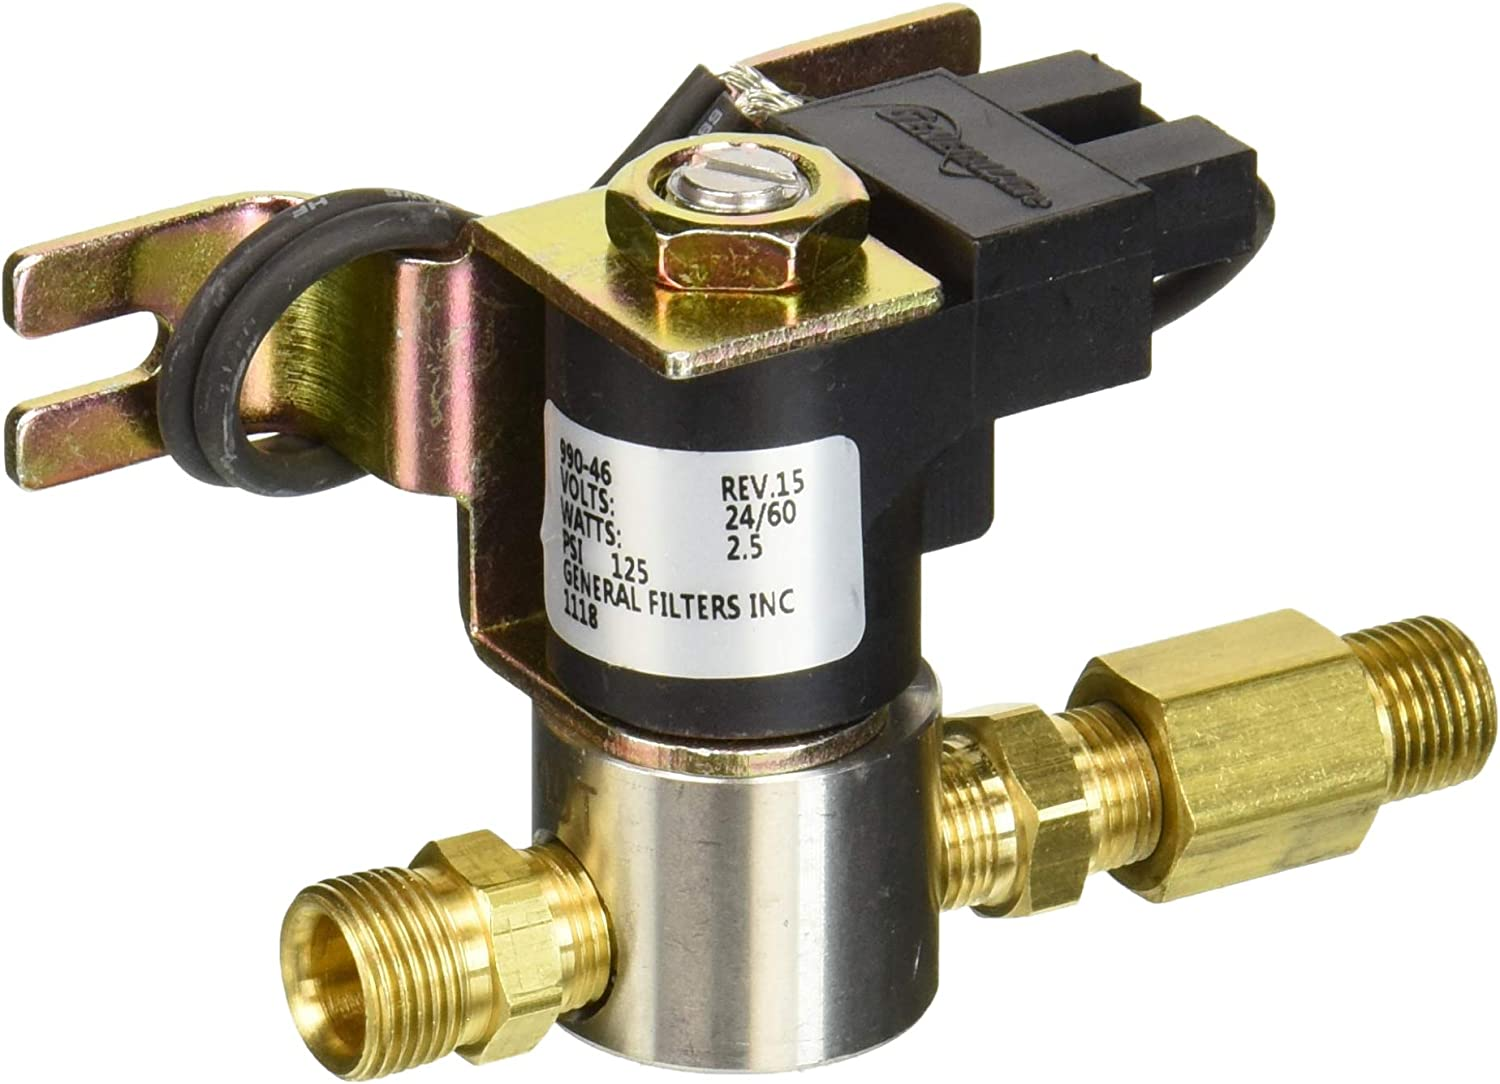 General Filters Inc. Gifts 990-53 Water Inlet Sales for sale Valve